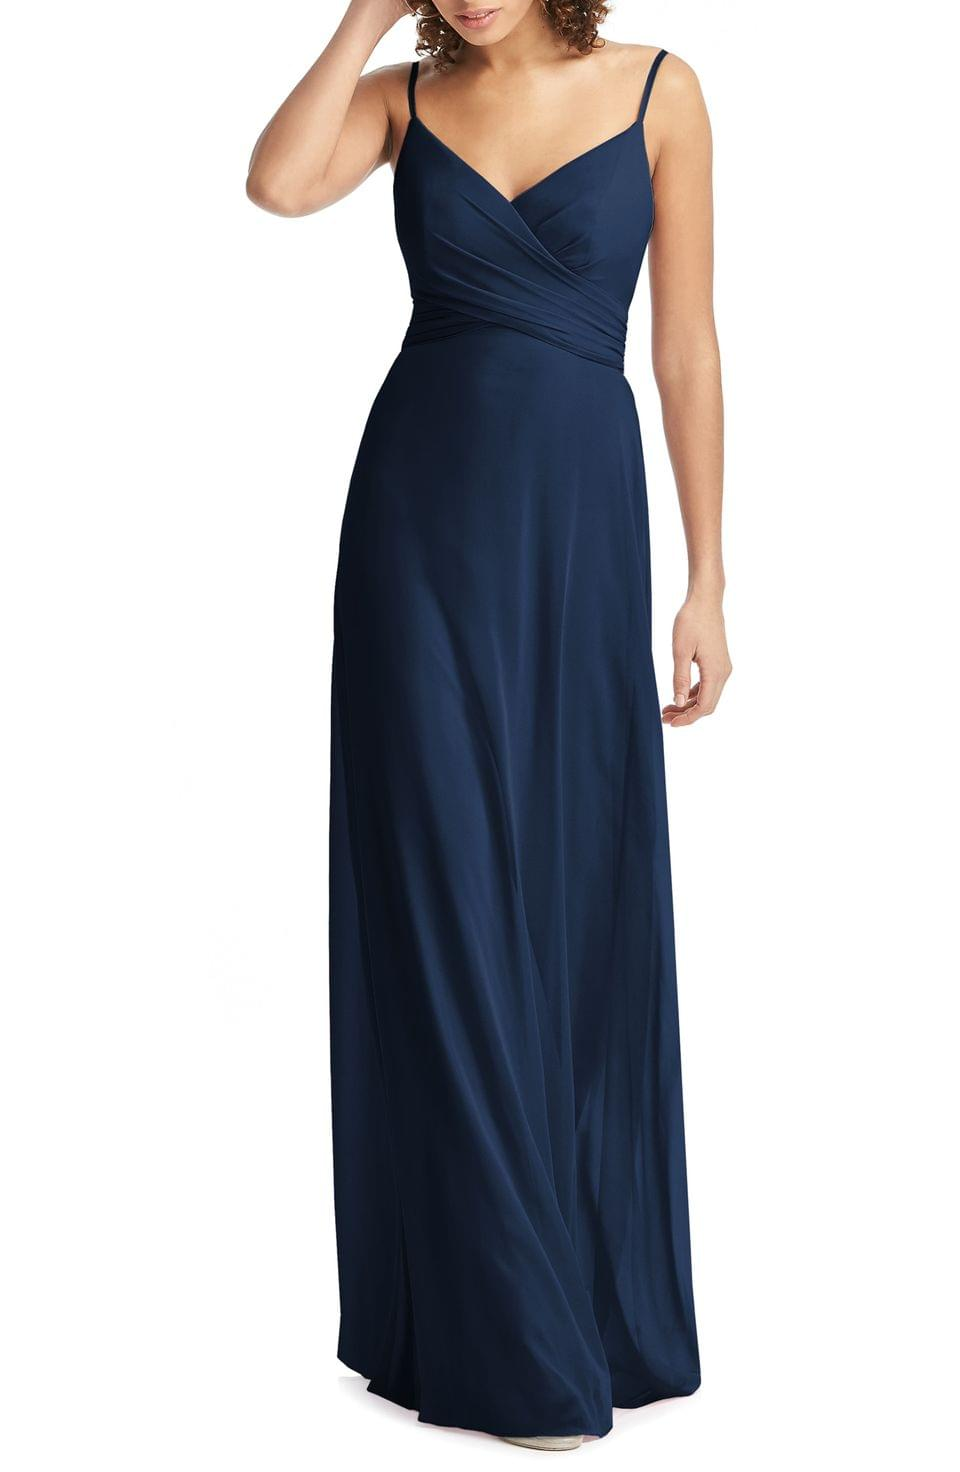 Women's Social Bridesmaids Crossover V-Neck Chiffon Trumpet Gown